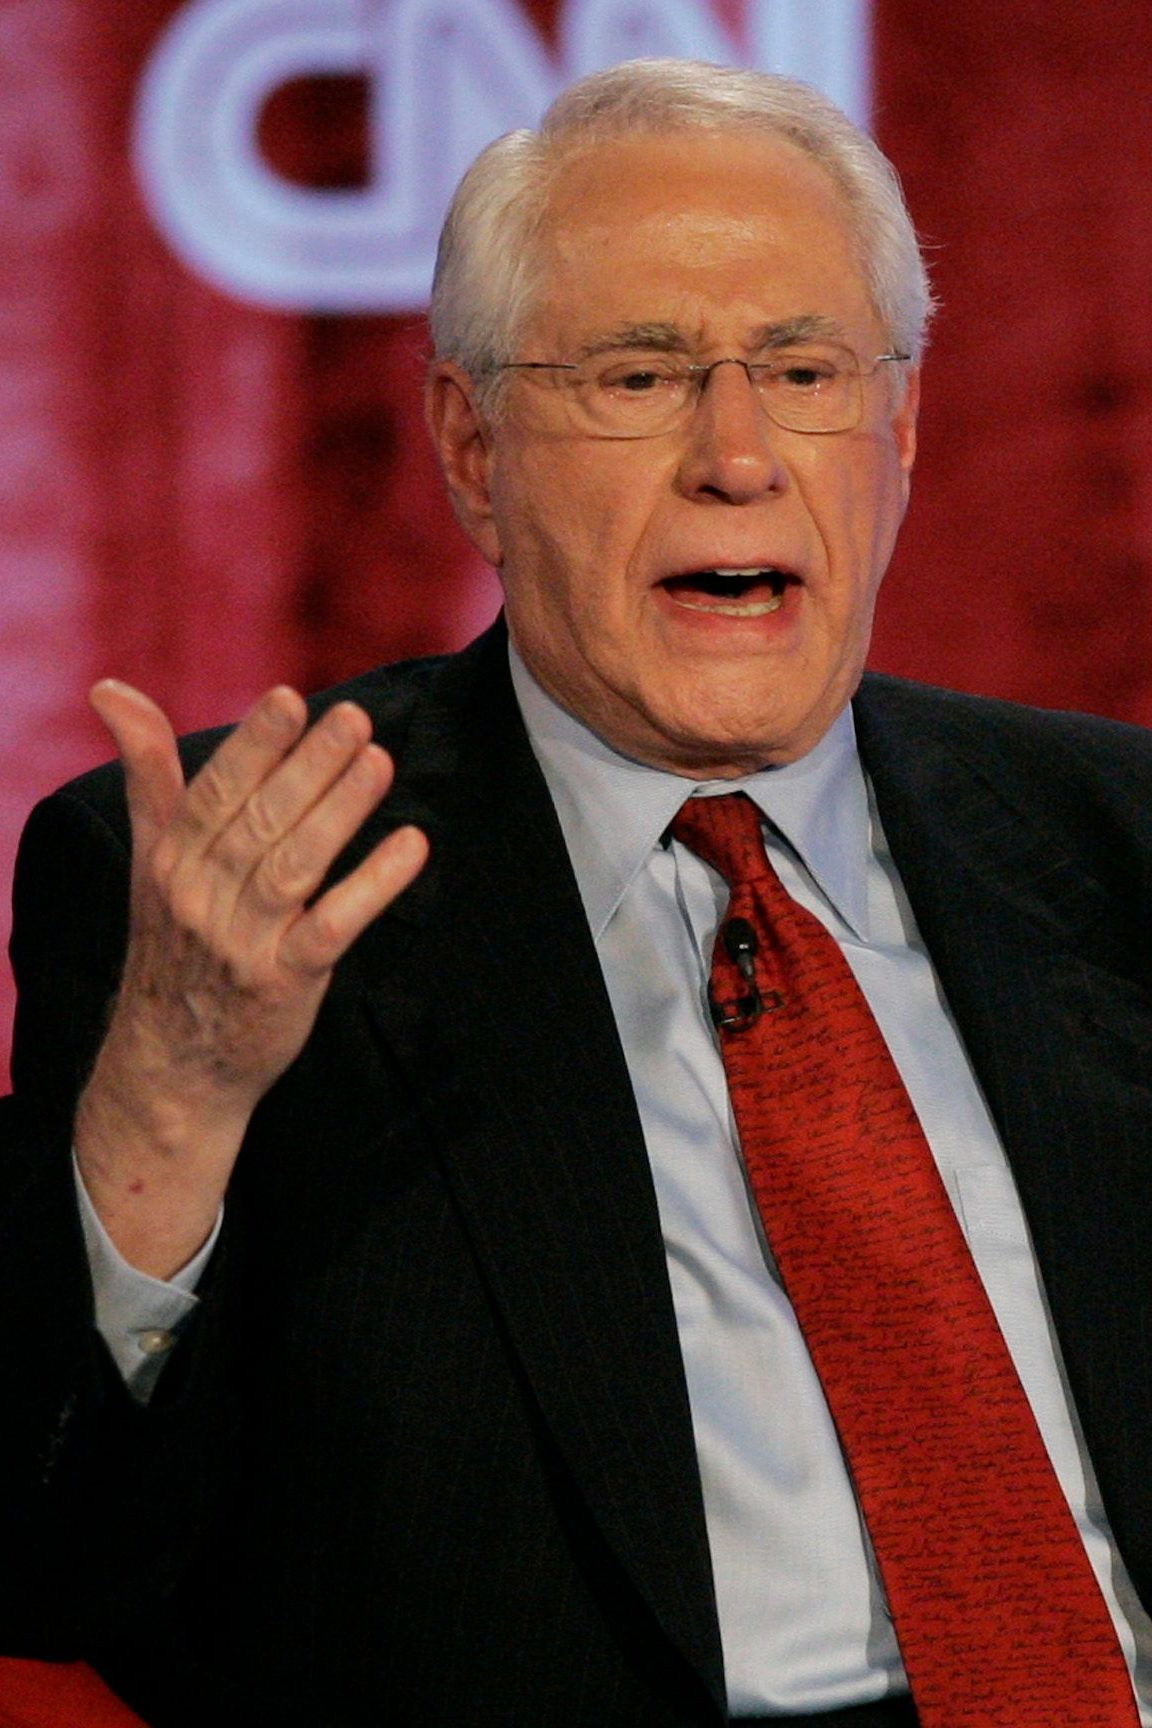 Former US Senator Mike Gravel during a Democratic presidential primary debate in 2007